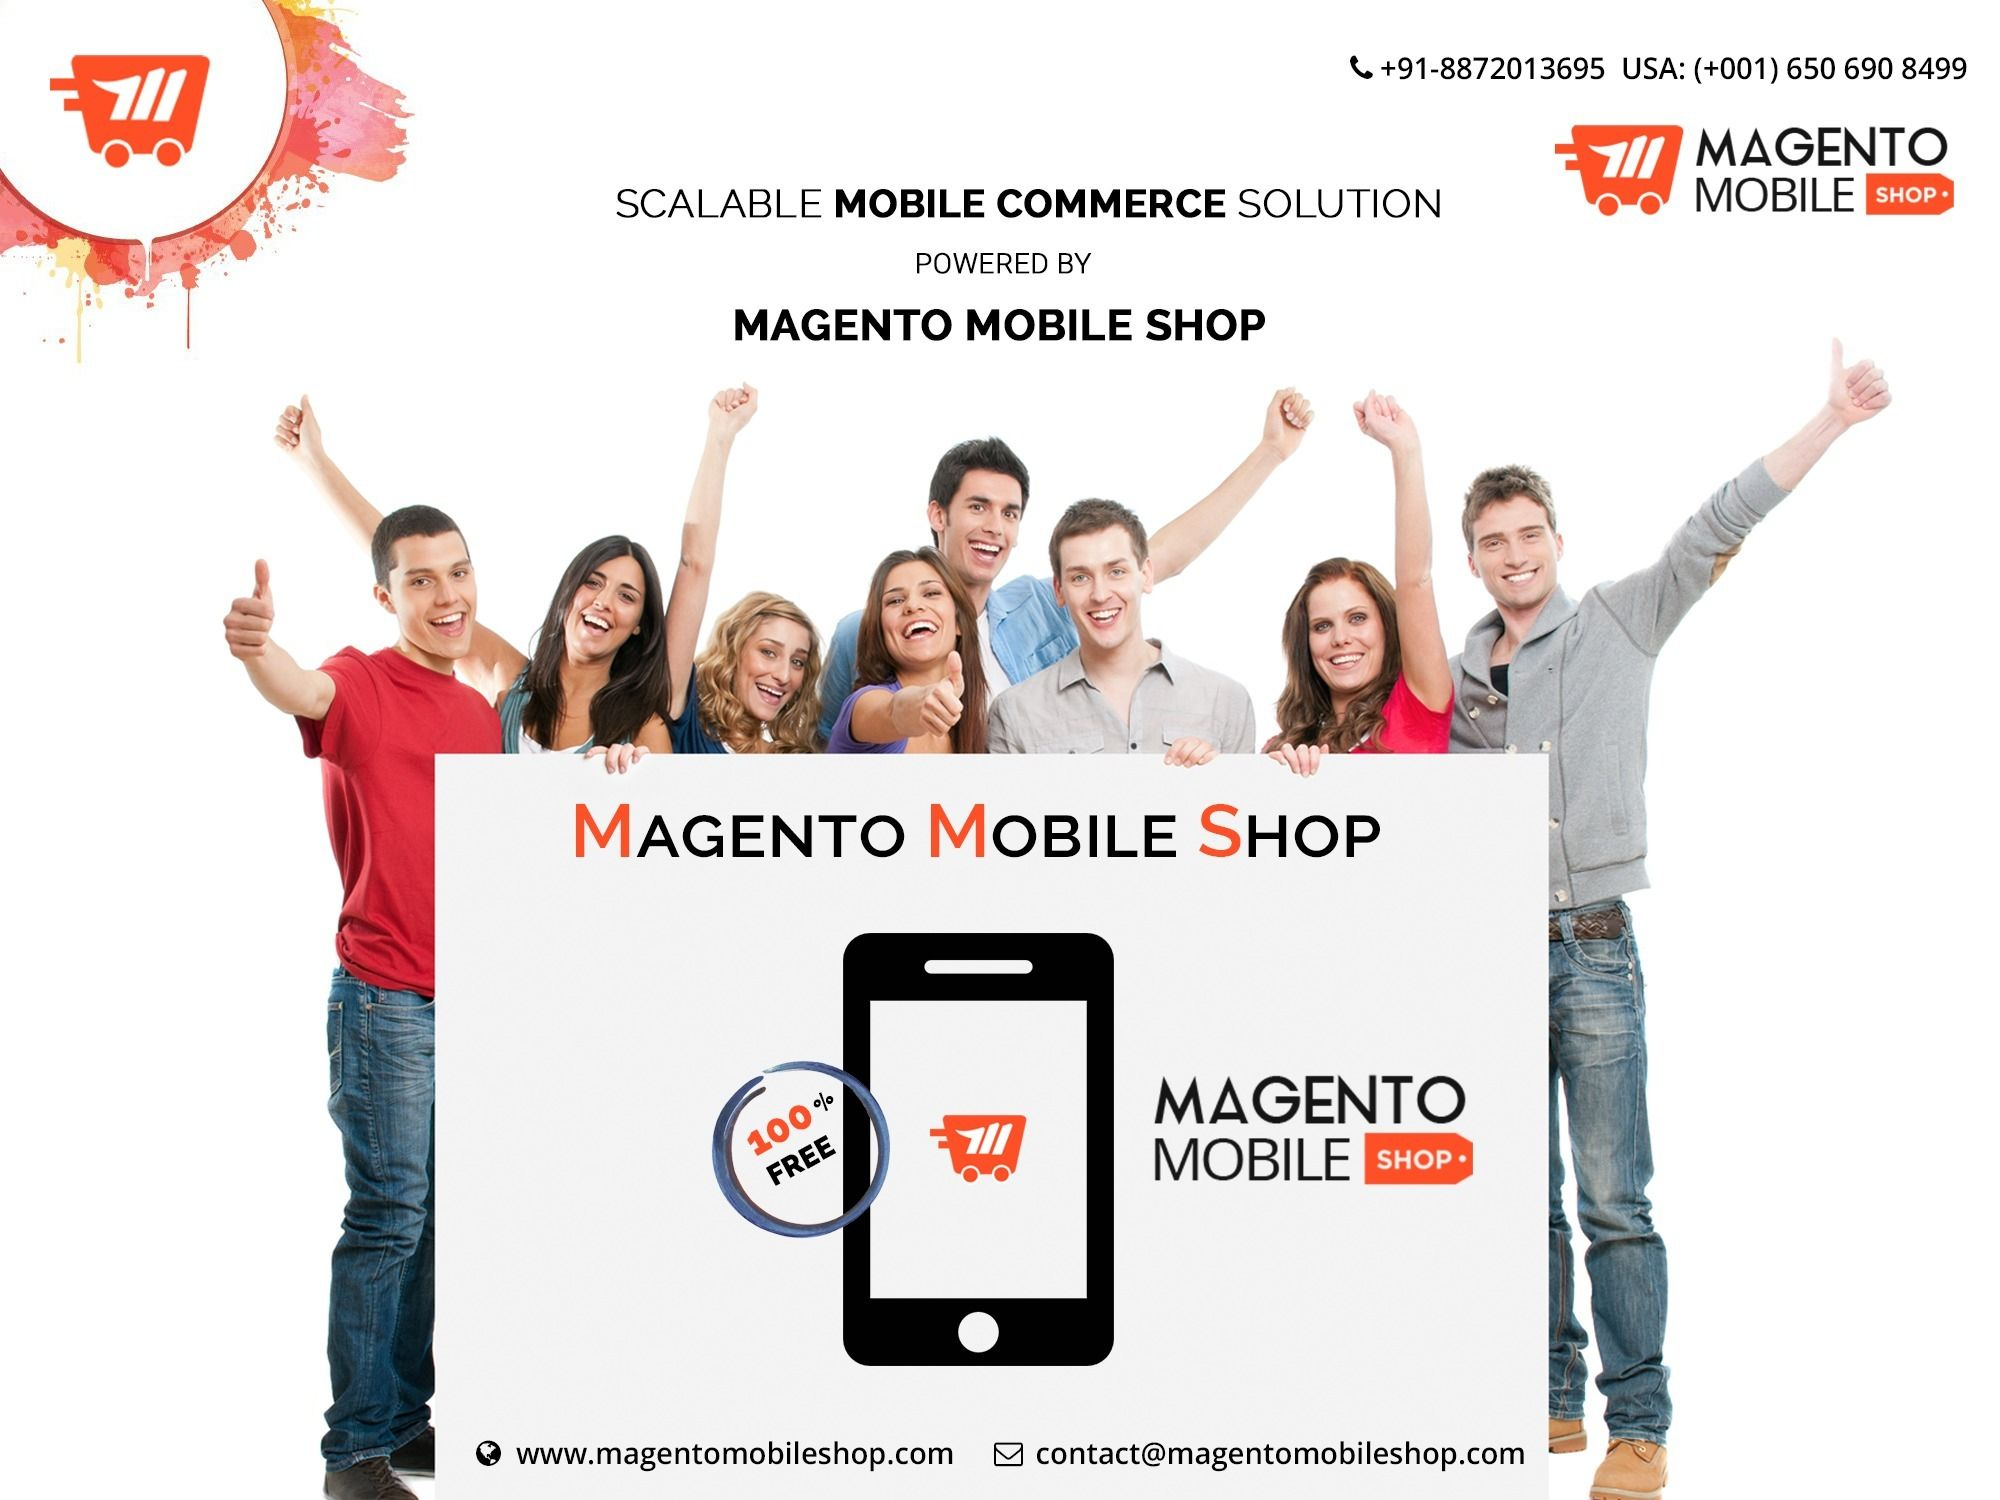 Magento Mobile App is a readymade product that caters to easy app development specifically for Magento based online stores. It aims at simplifying the app development process by skipping the lengthy phases such as conceptualization, designing and development with its ready-made framework.